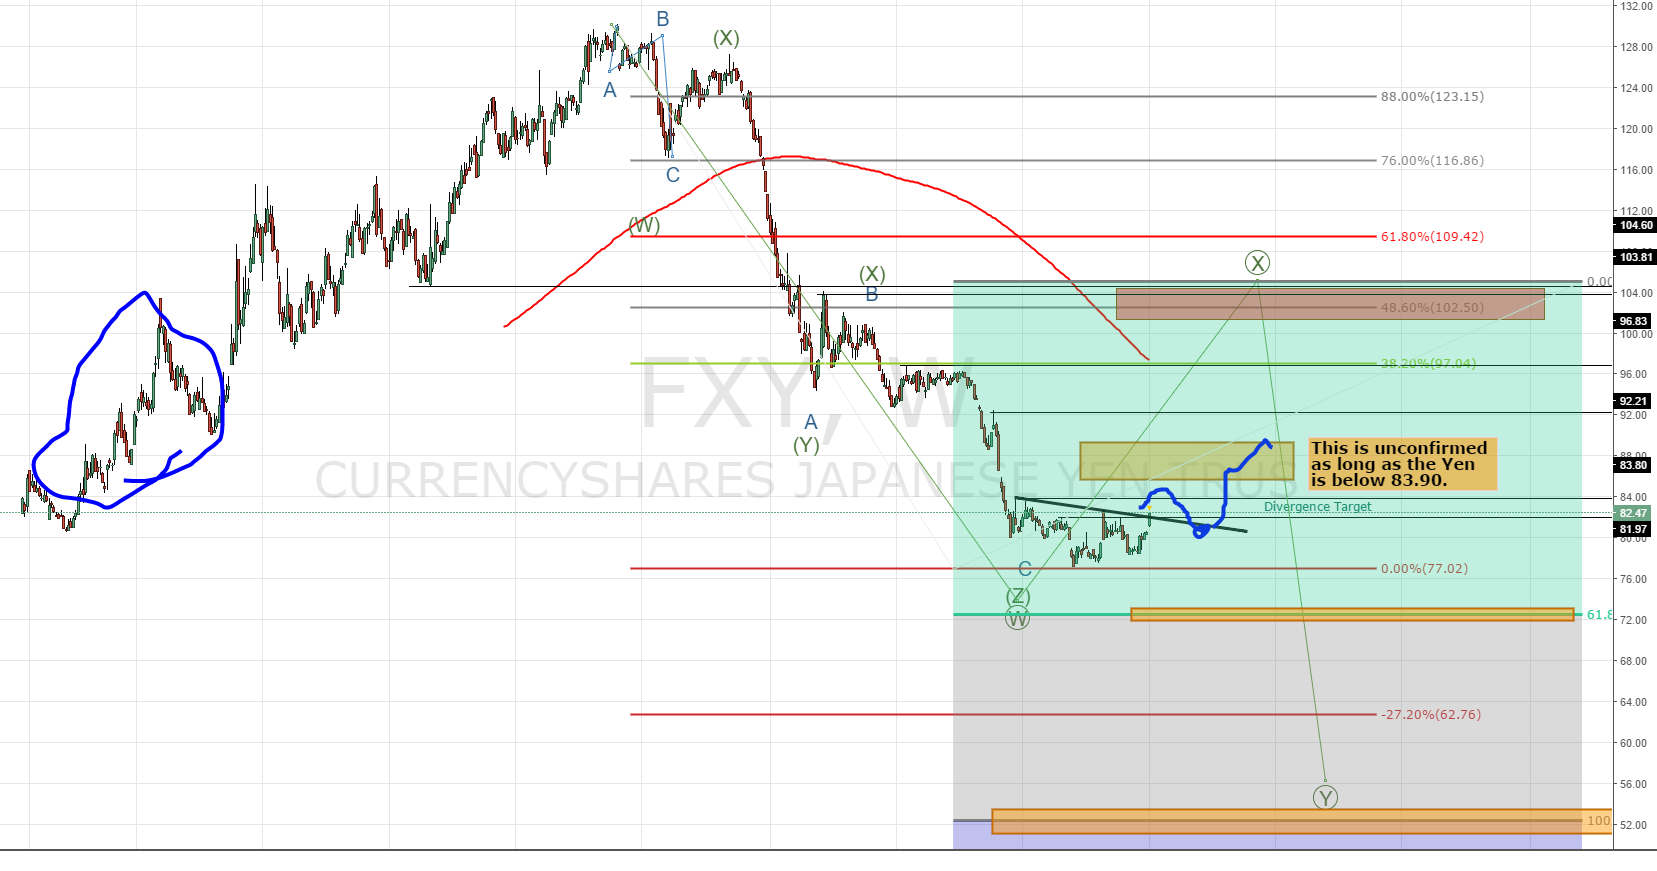 Wave Analysis of the Japanese Yen (FXY)